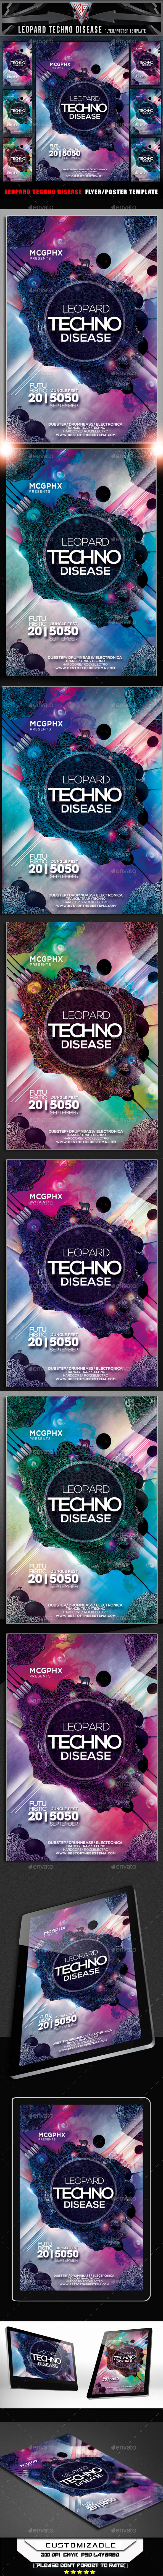 Leopard Techno Disease Flyer Template - Clubs & Parties Events